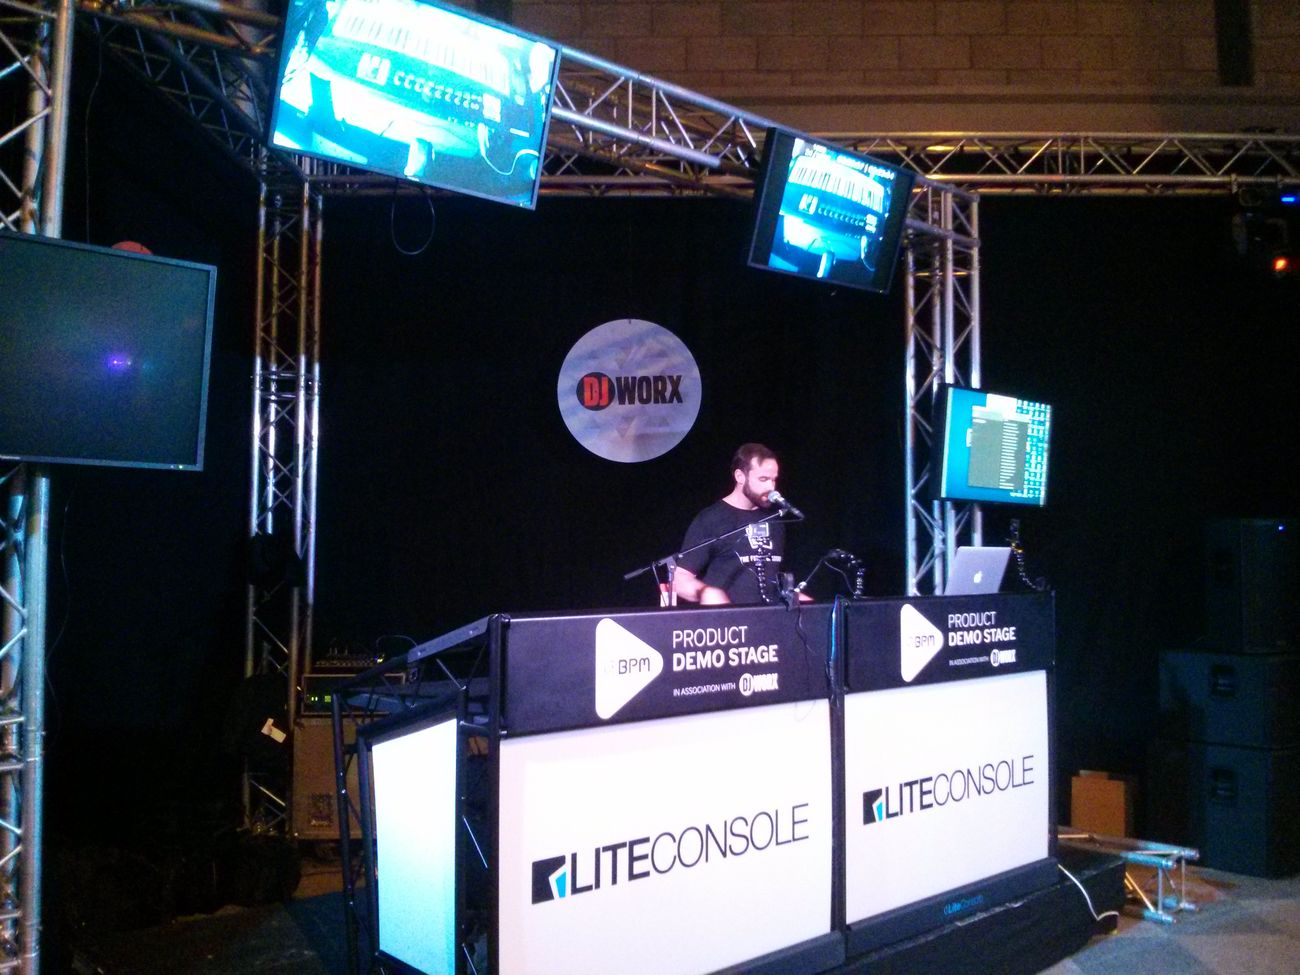 Native Instruments talking about the new Komplete software and keyboard.